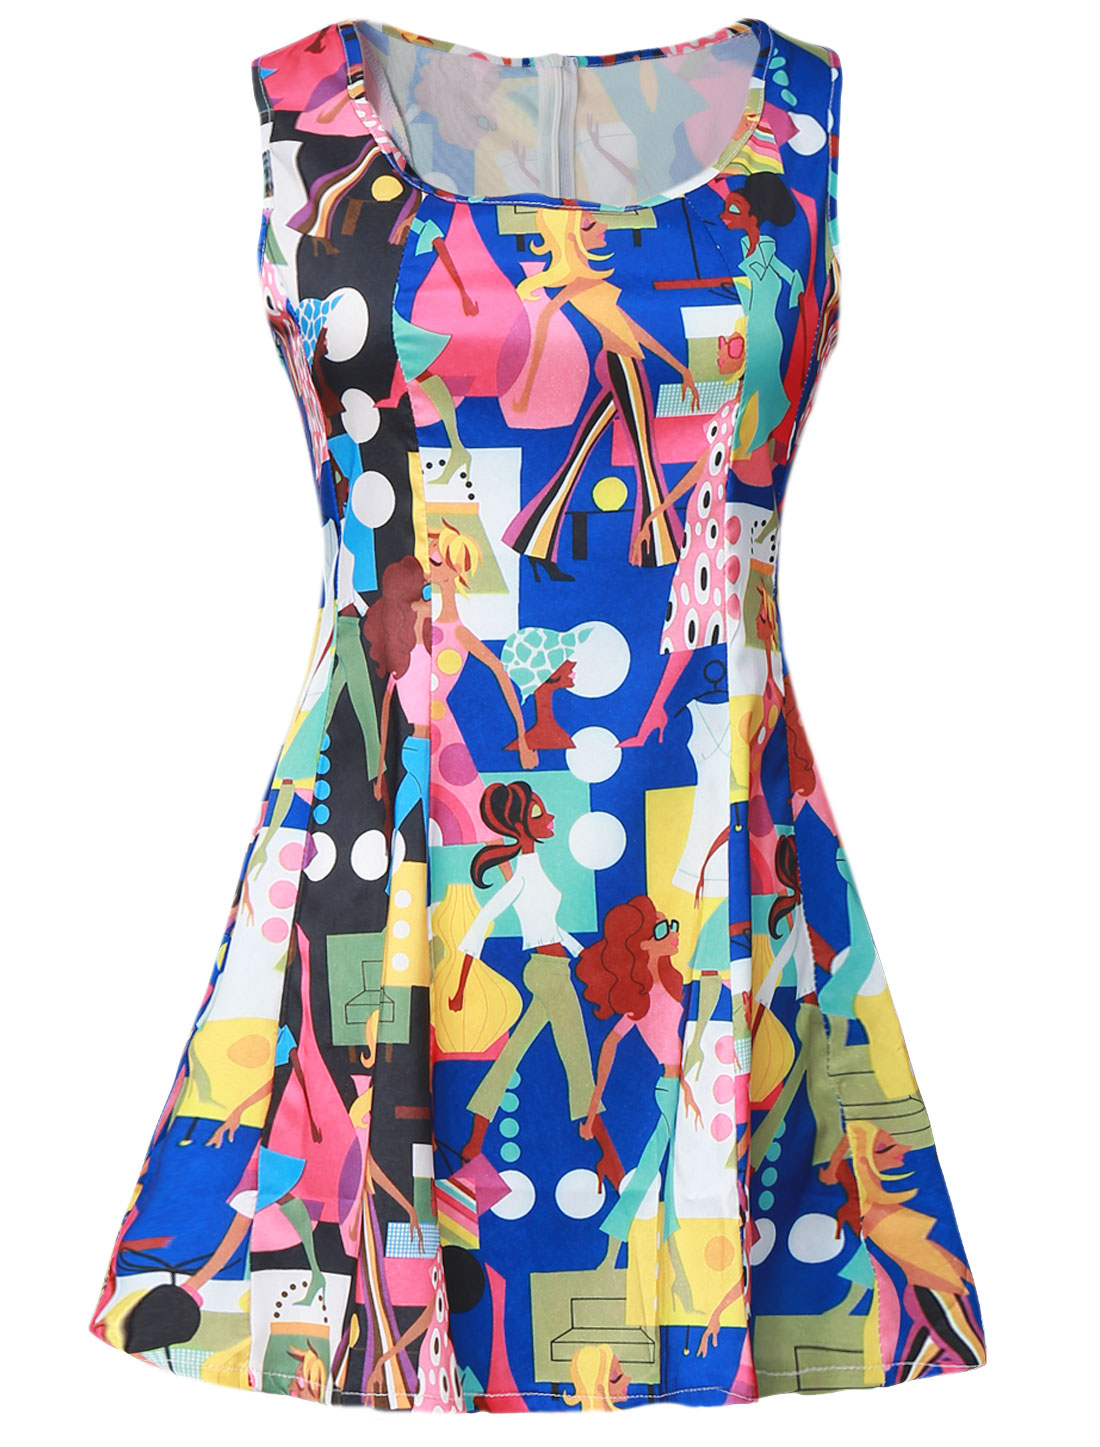 Lady NEW Cartoon Portrait Prints Concealed Zipper Back Skater Dress Royal Blue S